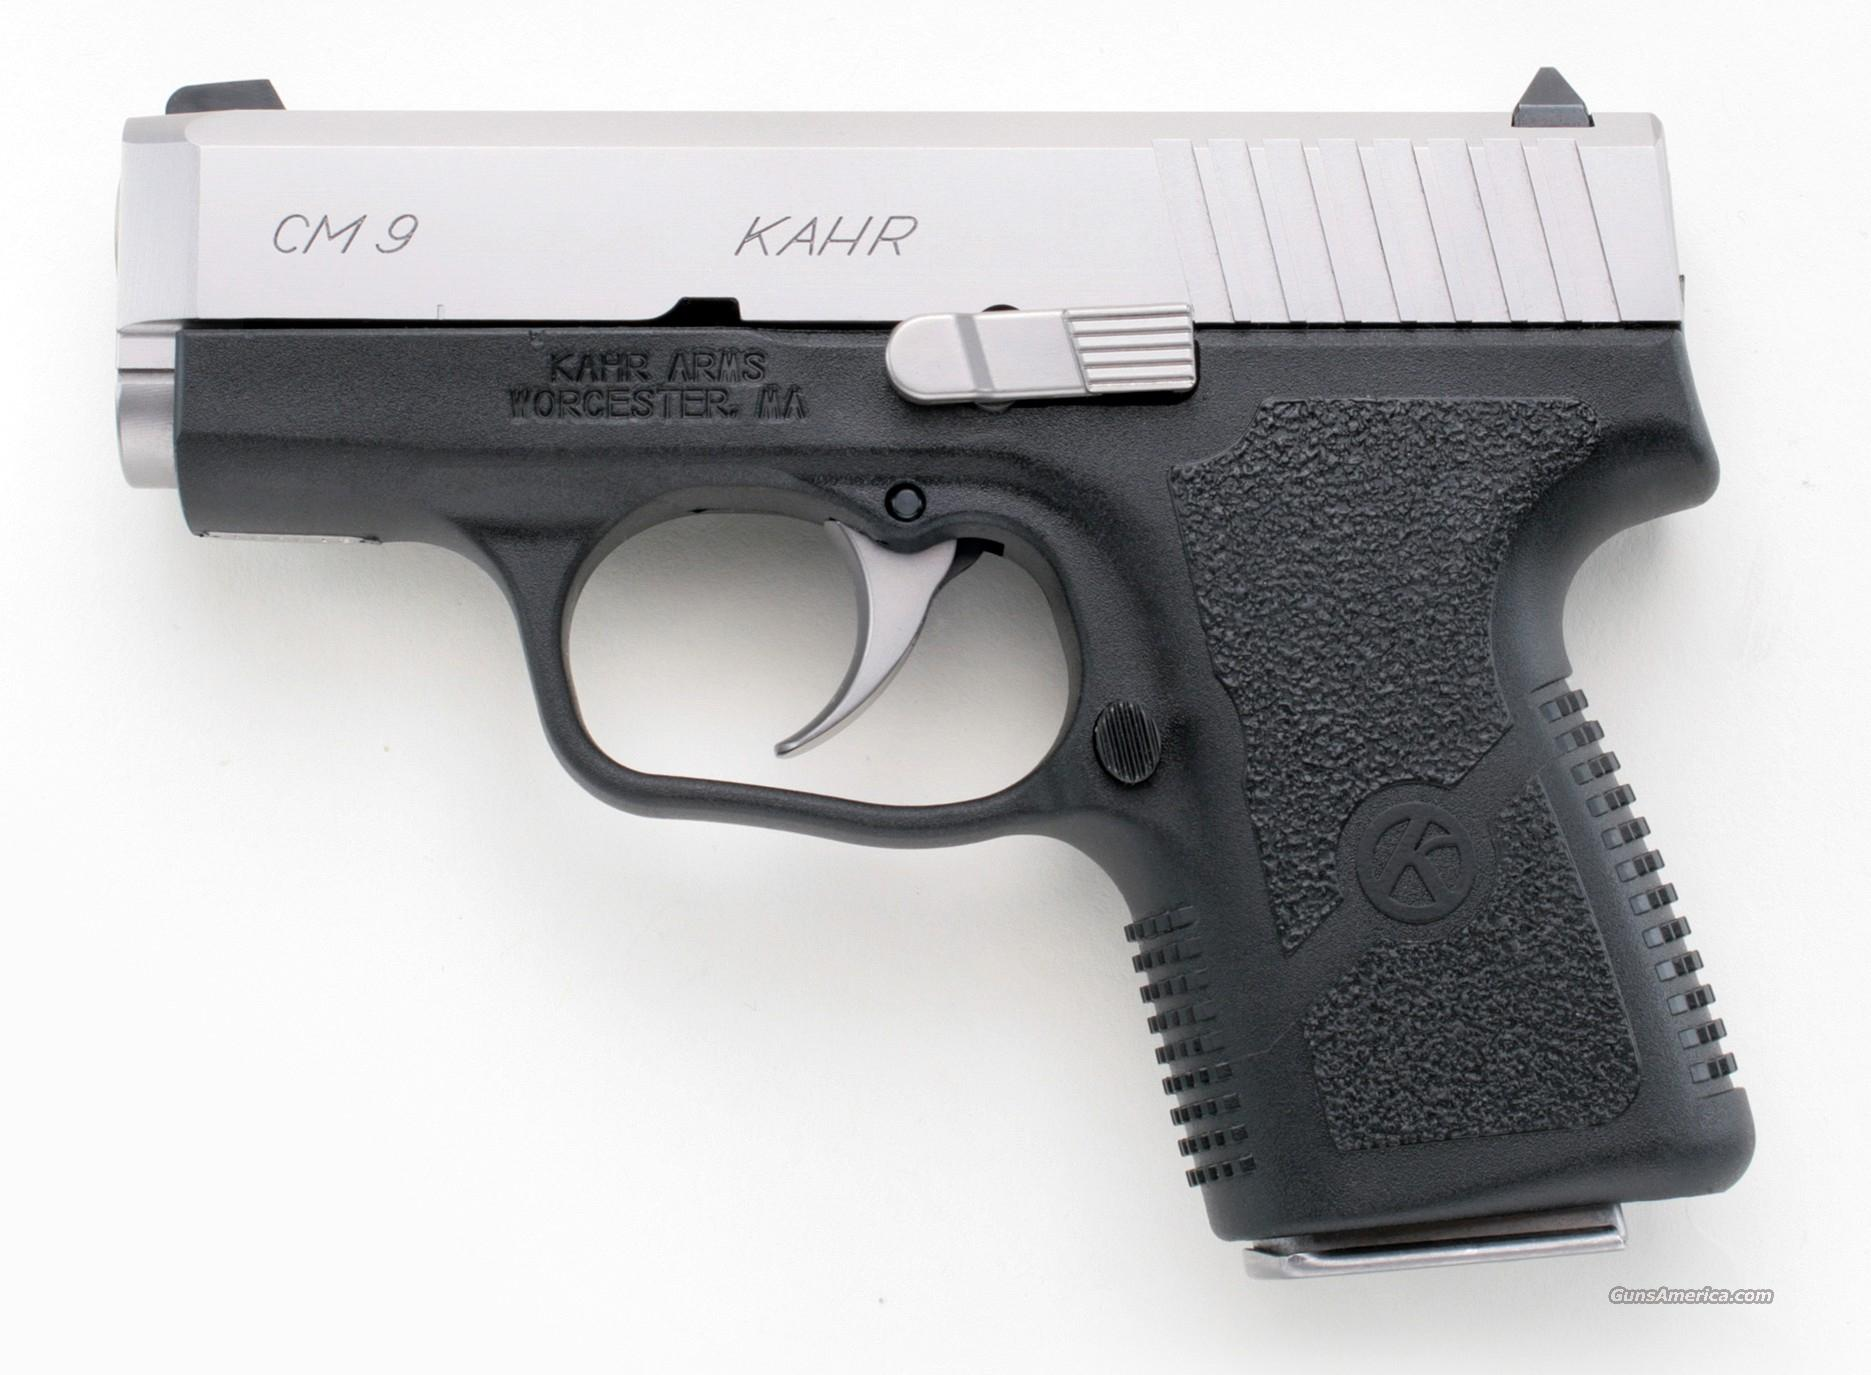 KAHR CM9 9MM COMPACT STAINLESS - NEW - 2 MAGS!  Guns > Pistols > Kahr Pistols